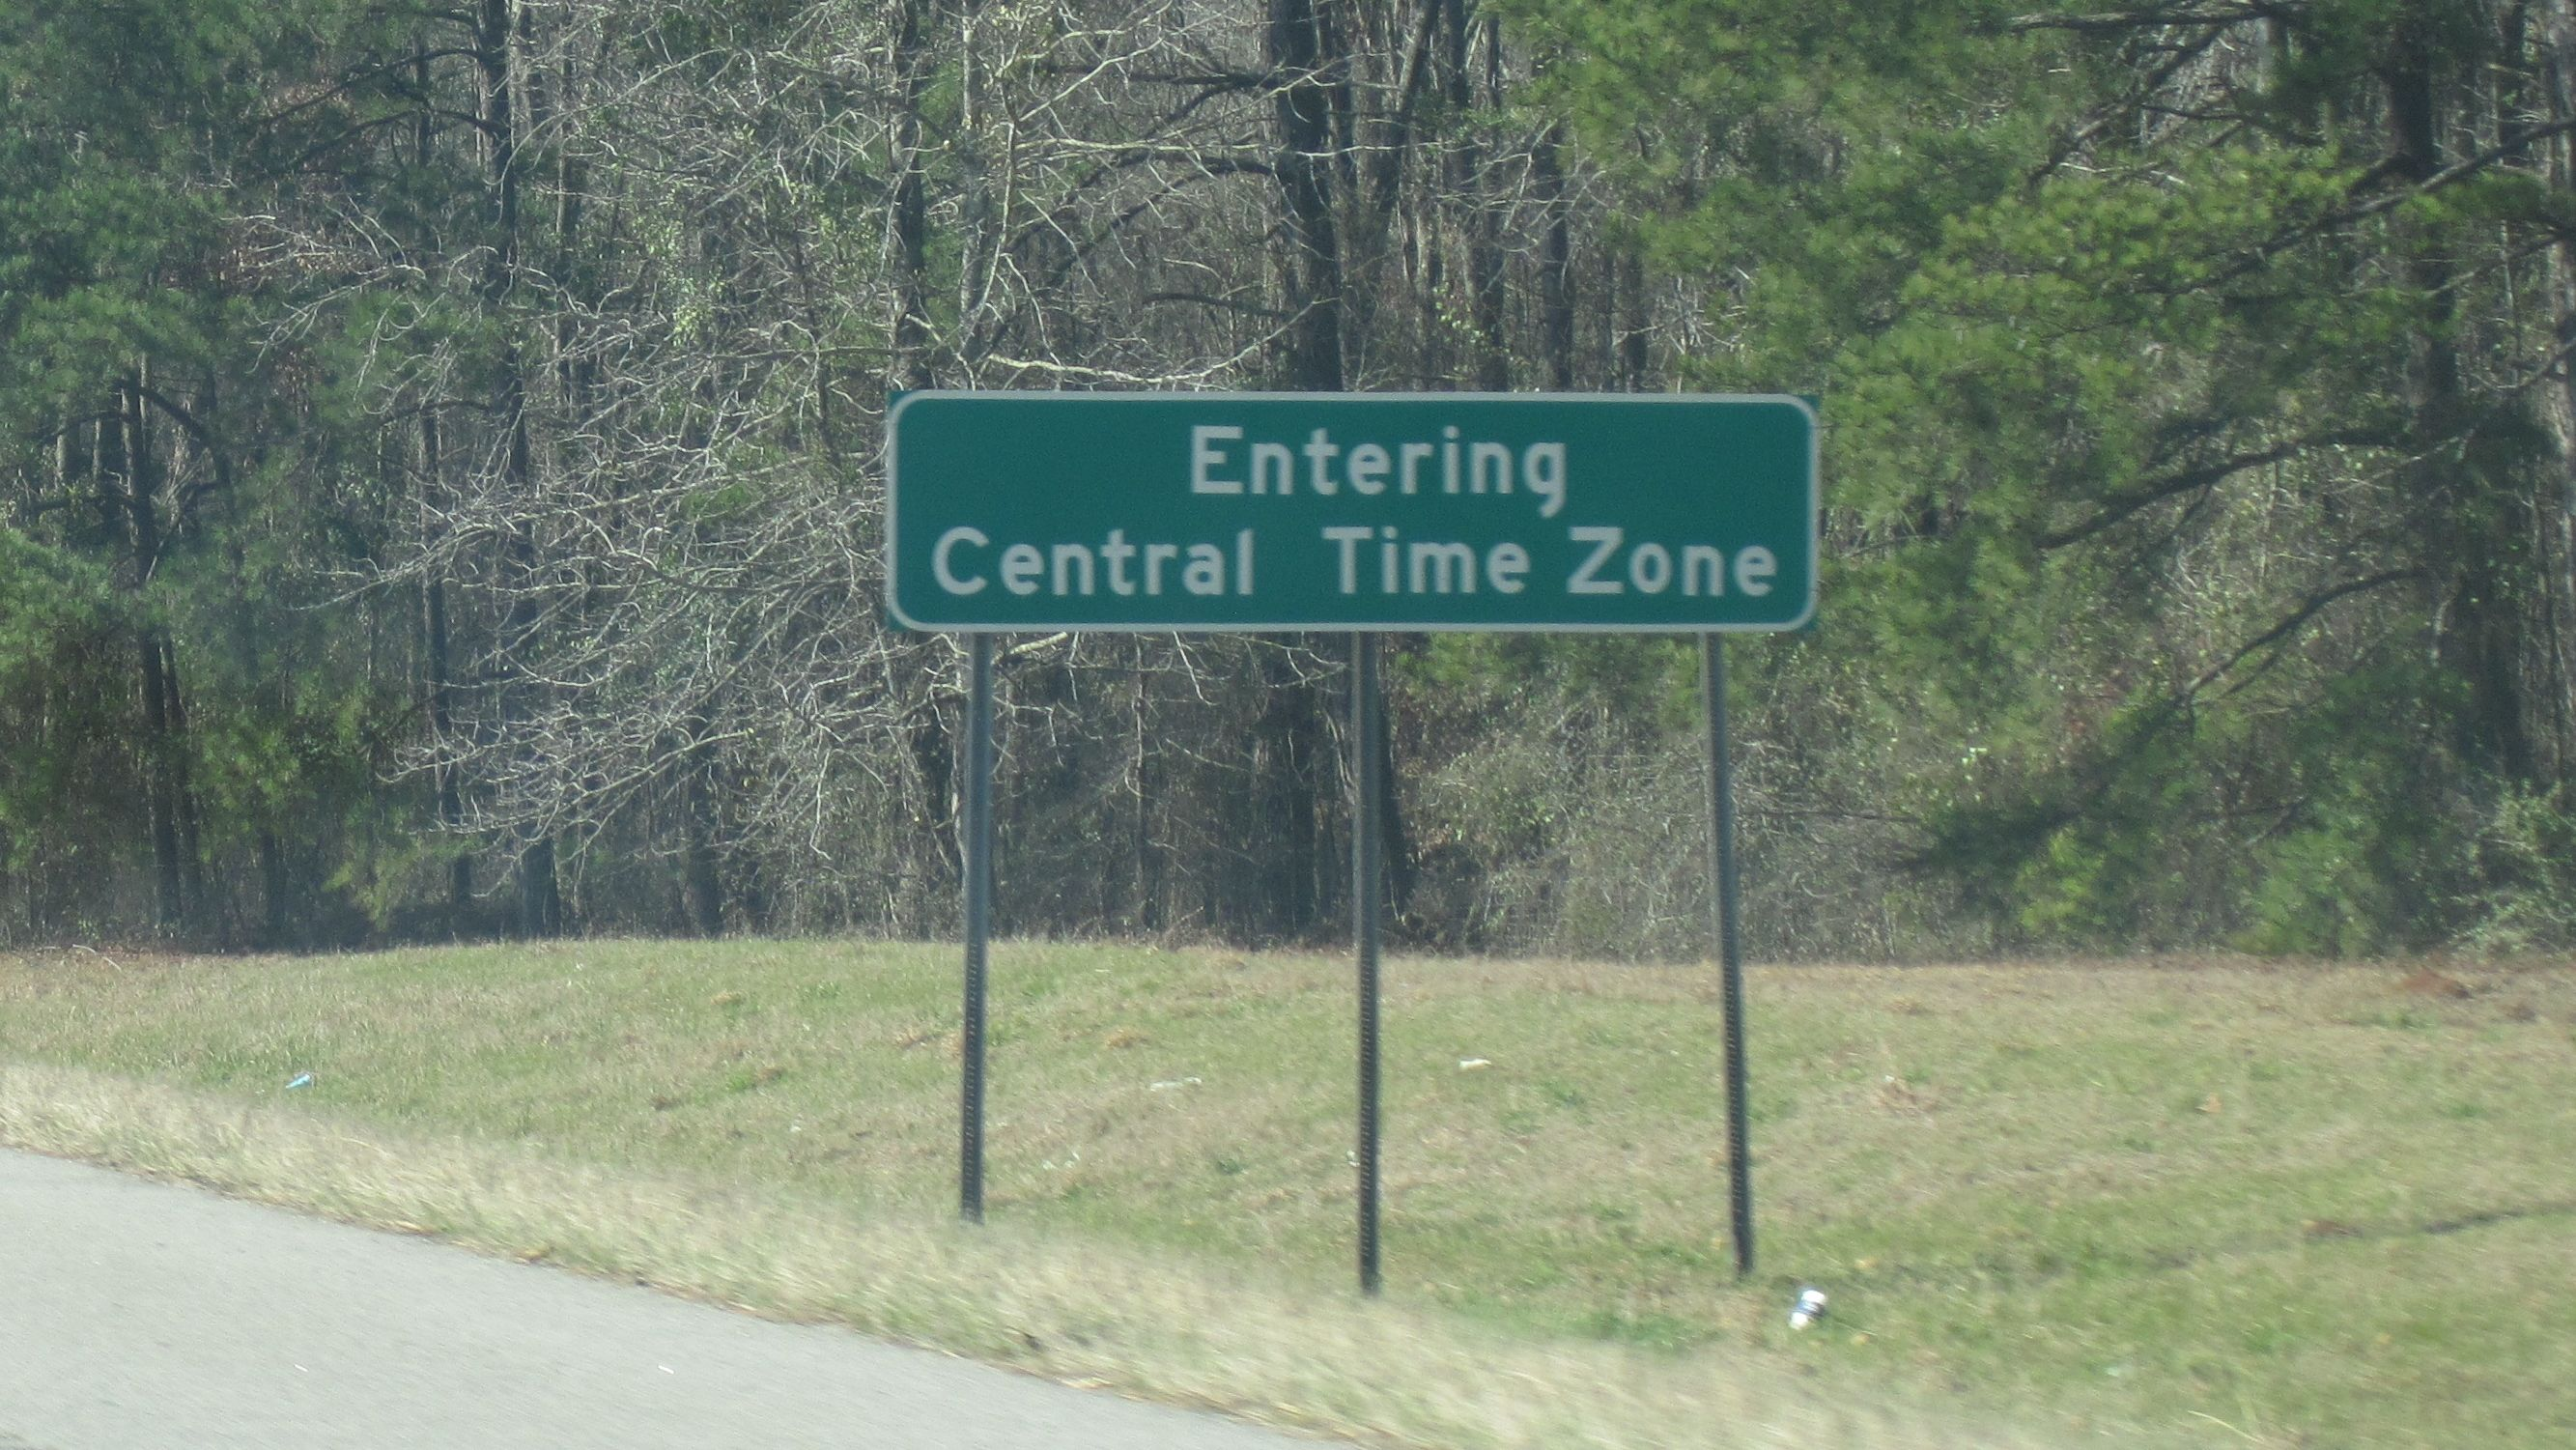 Entering Central Time Zone Entering Central Time